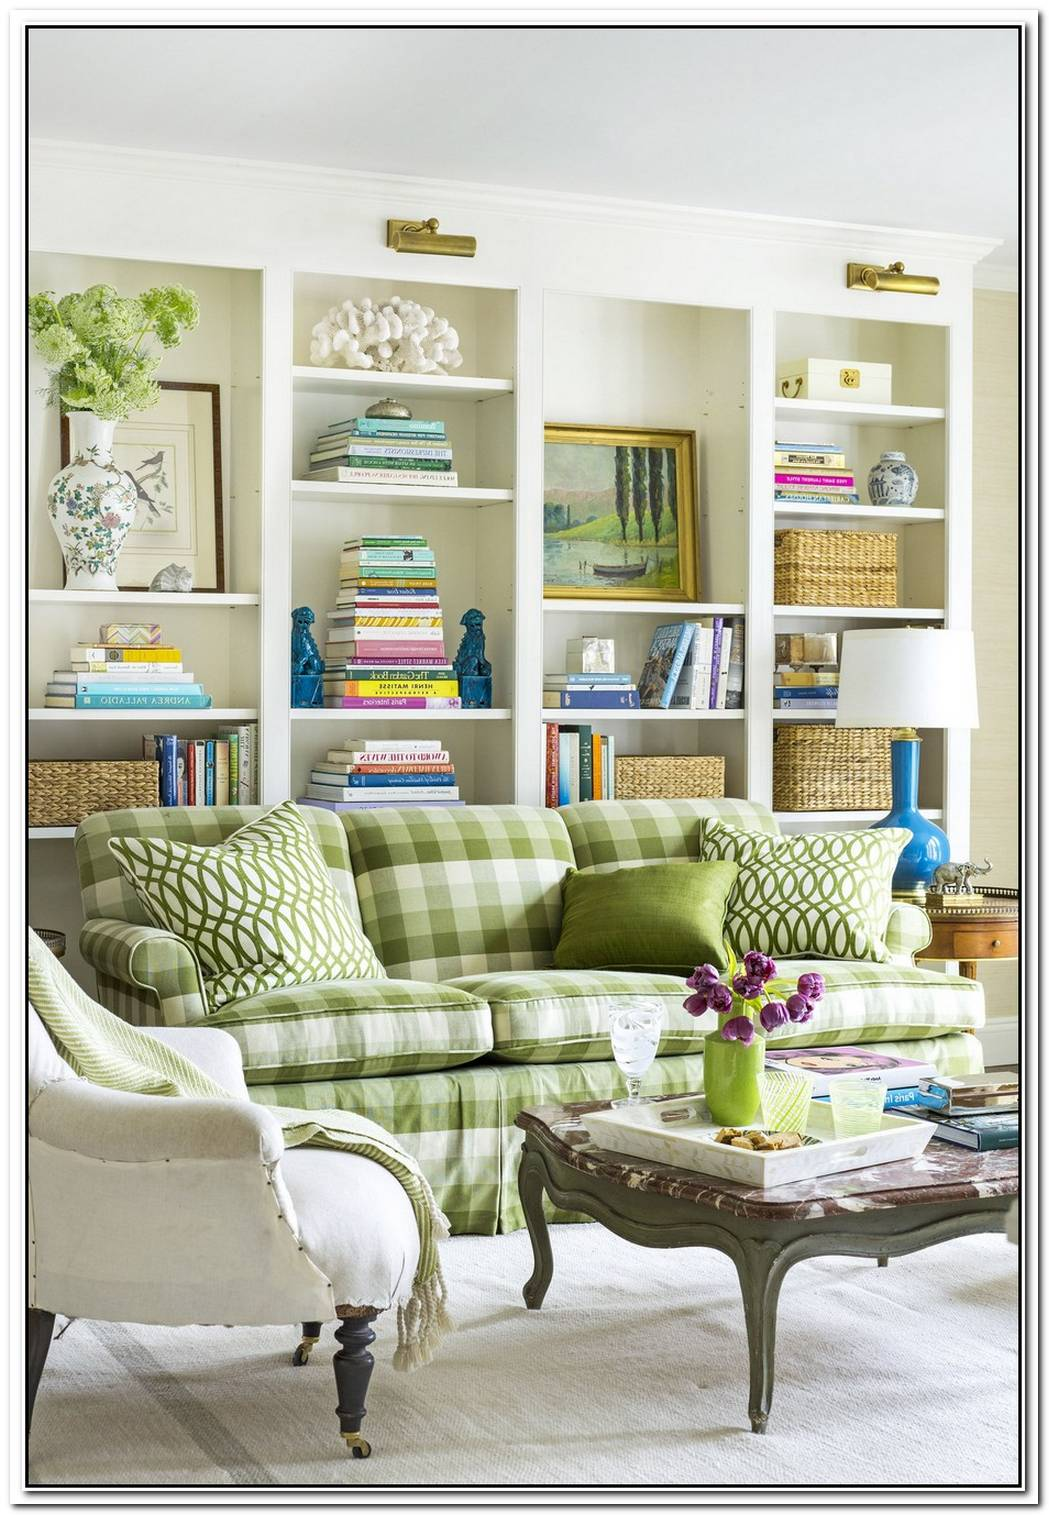 Fun And Sunny Interior Design With Green Accents By Gideon Mendelson